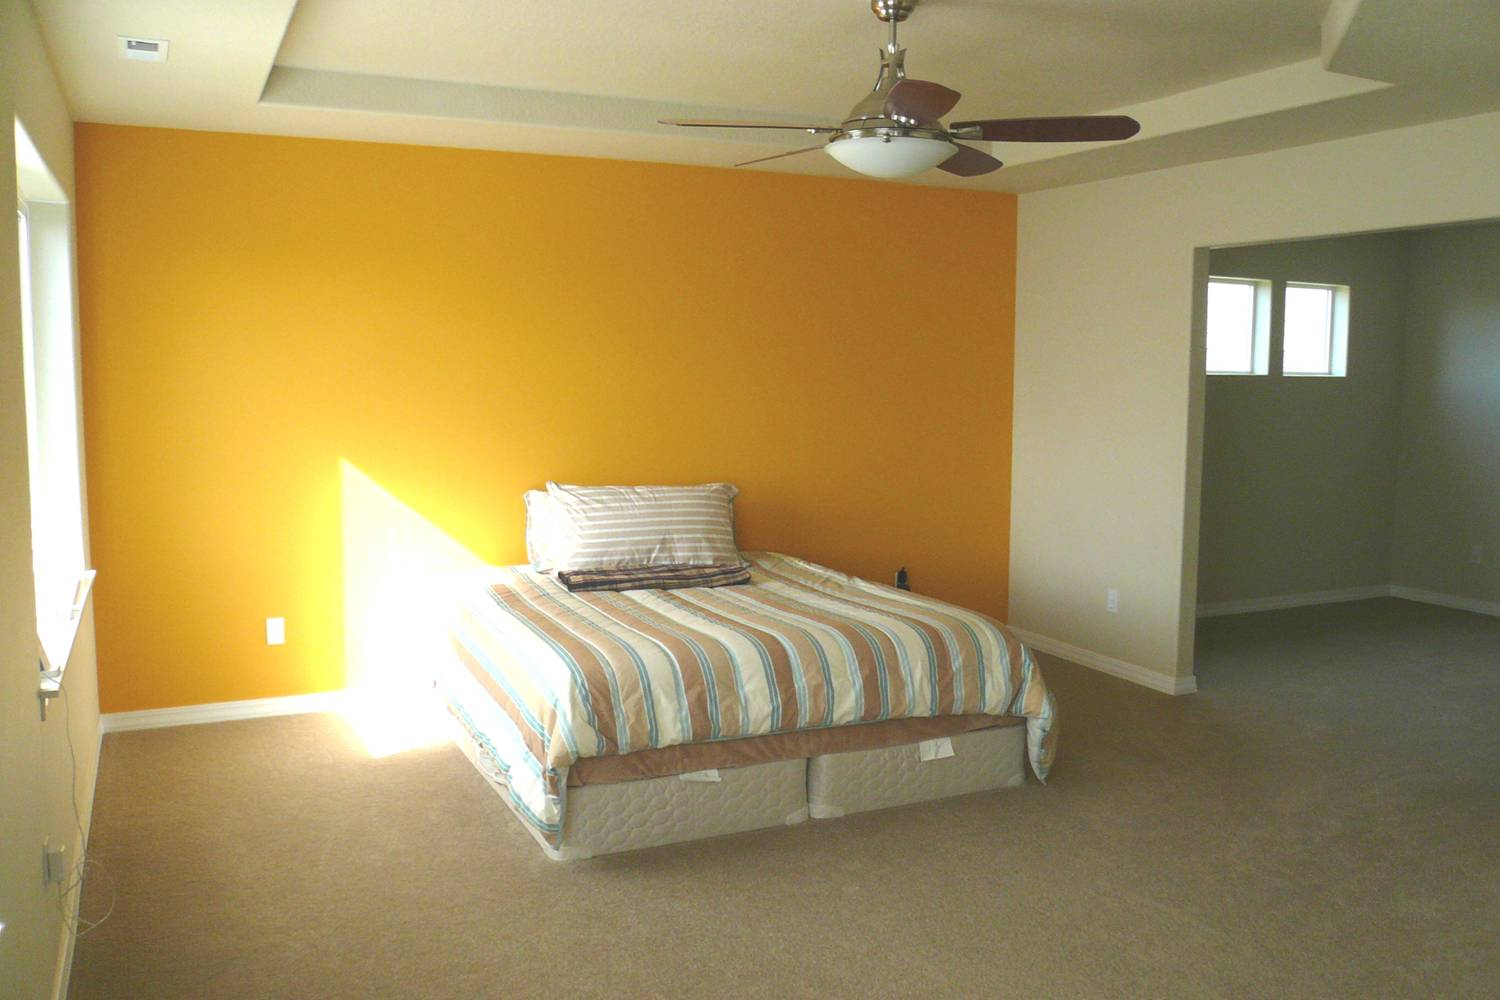 Bedroom colors yellow - Common Decorating Mistakes Devine Results